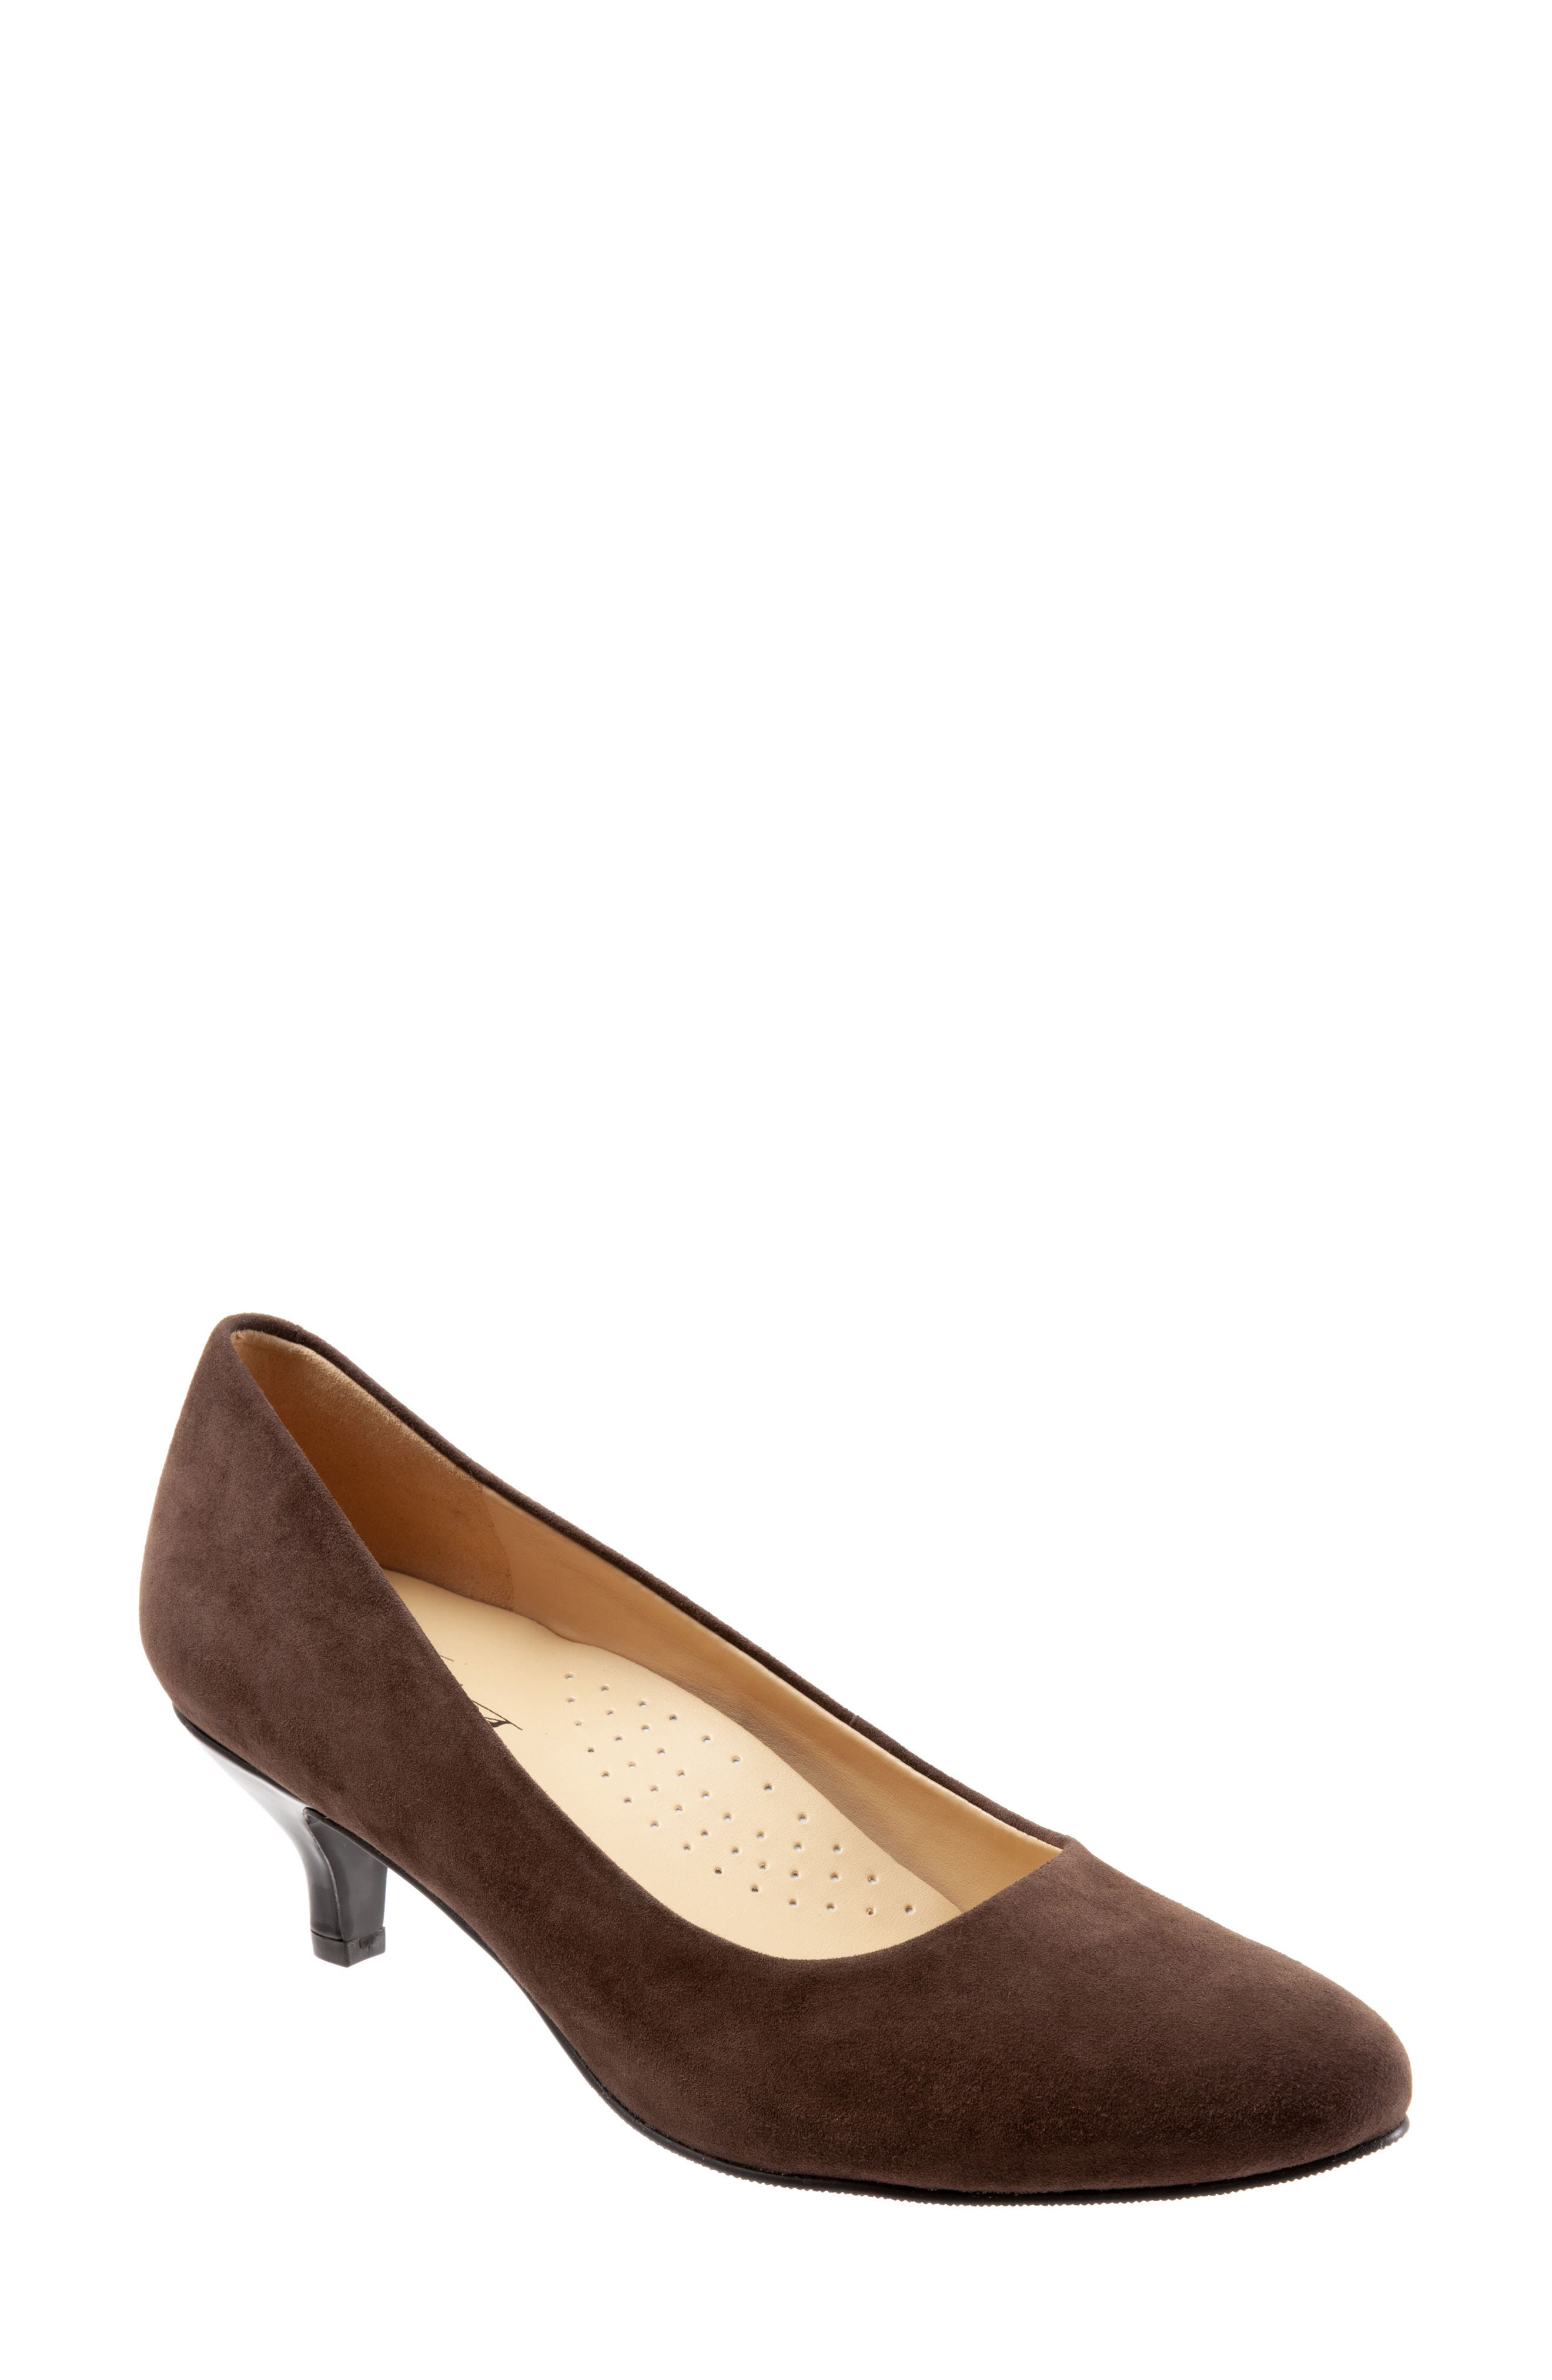 TROTTERS Kiera Pump, Main, color, DARK BROWN SUEDE